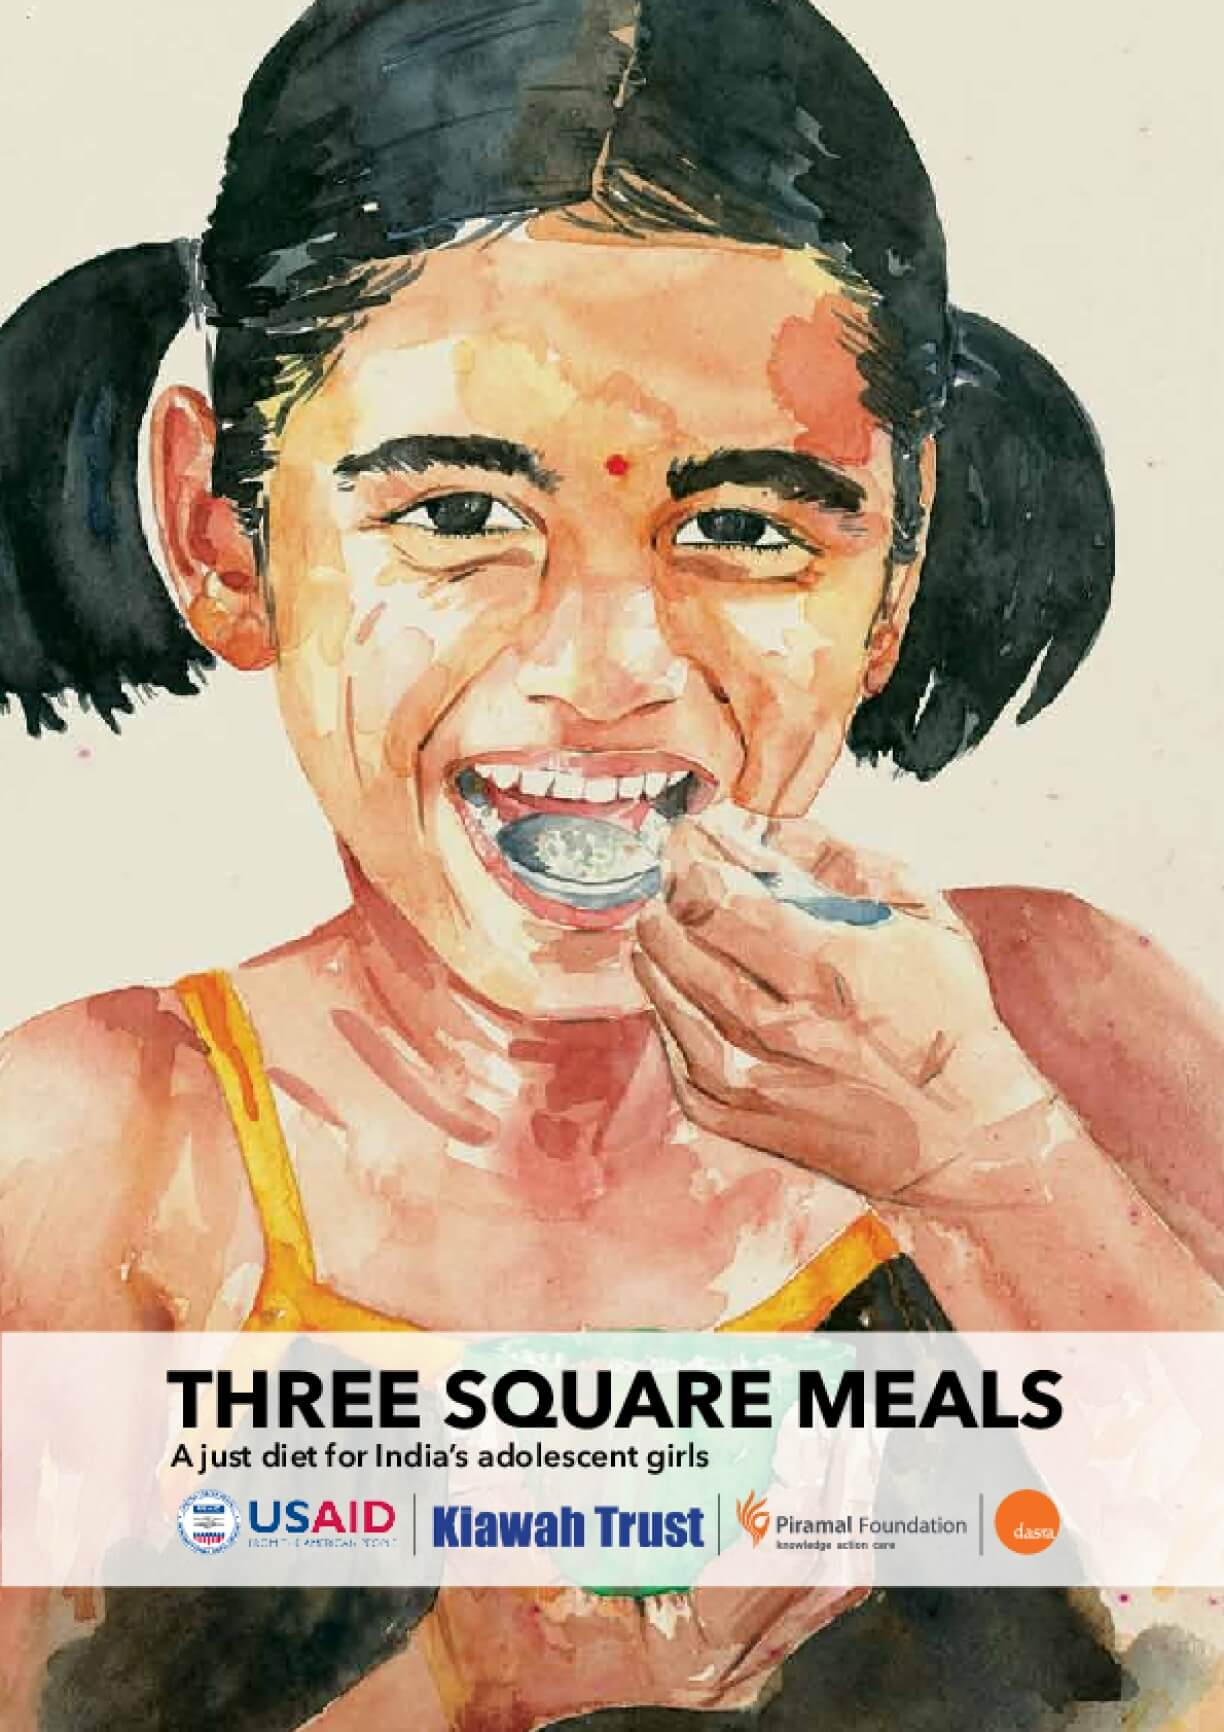 Three Square Meals: A just diet for India's adolescent girls - Part 1: The Issue and Context